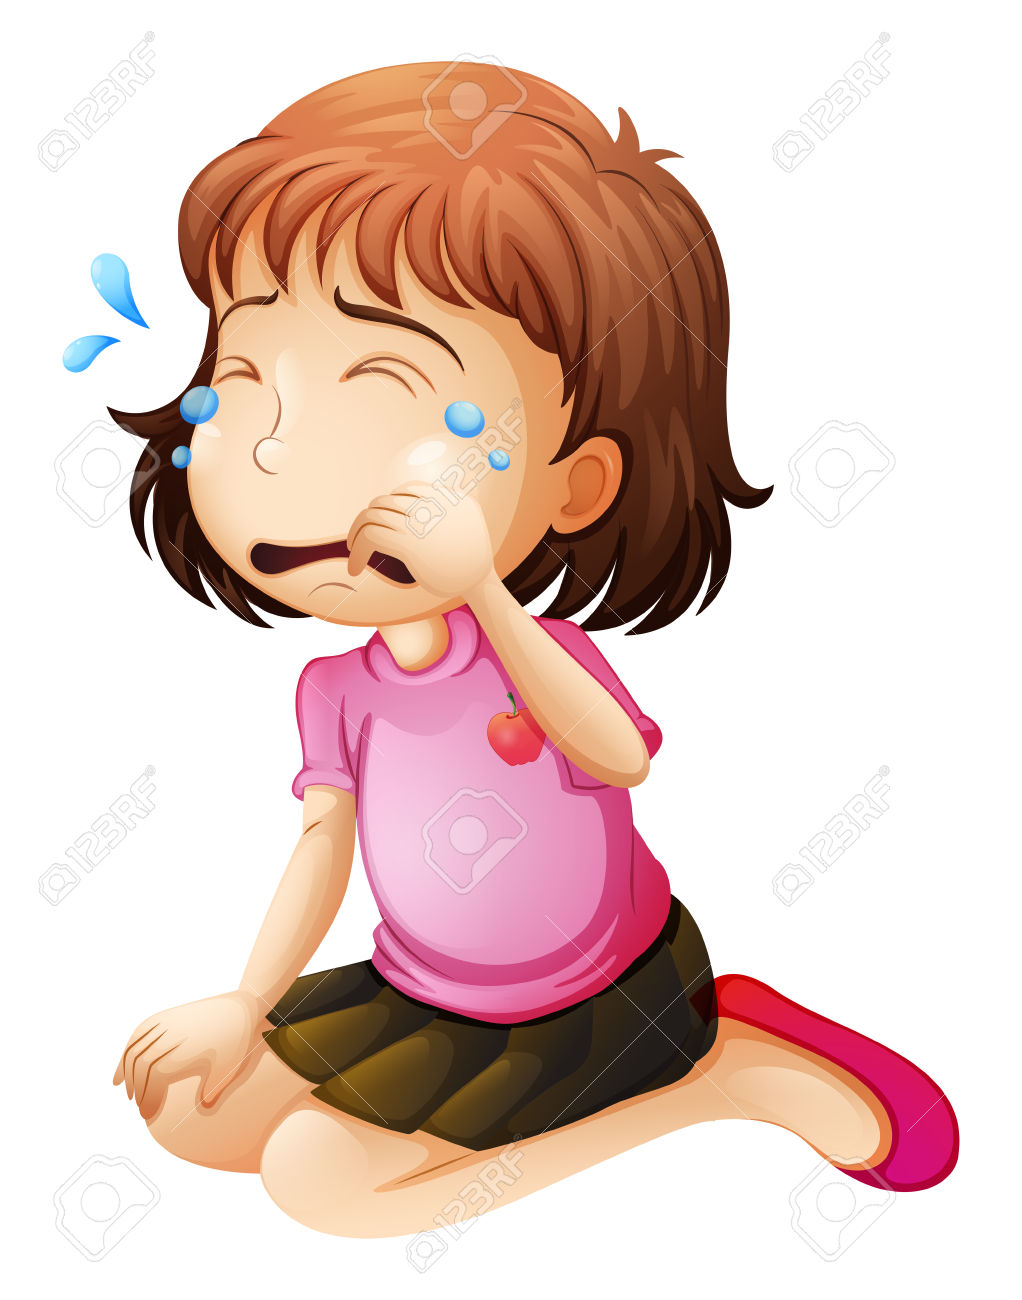 Illustration Of A Little Girl Crying On A White Background Royalty.